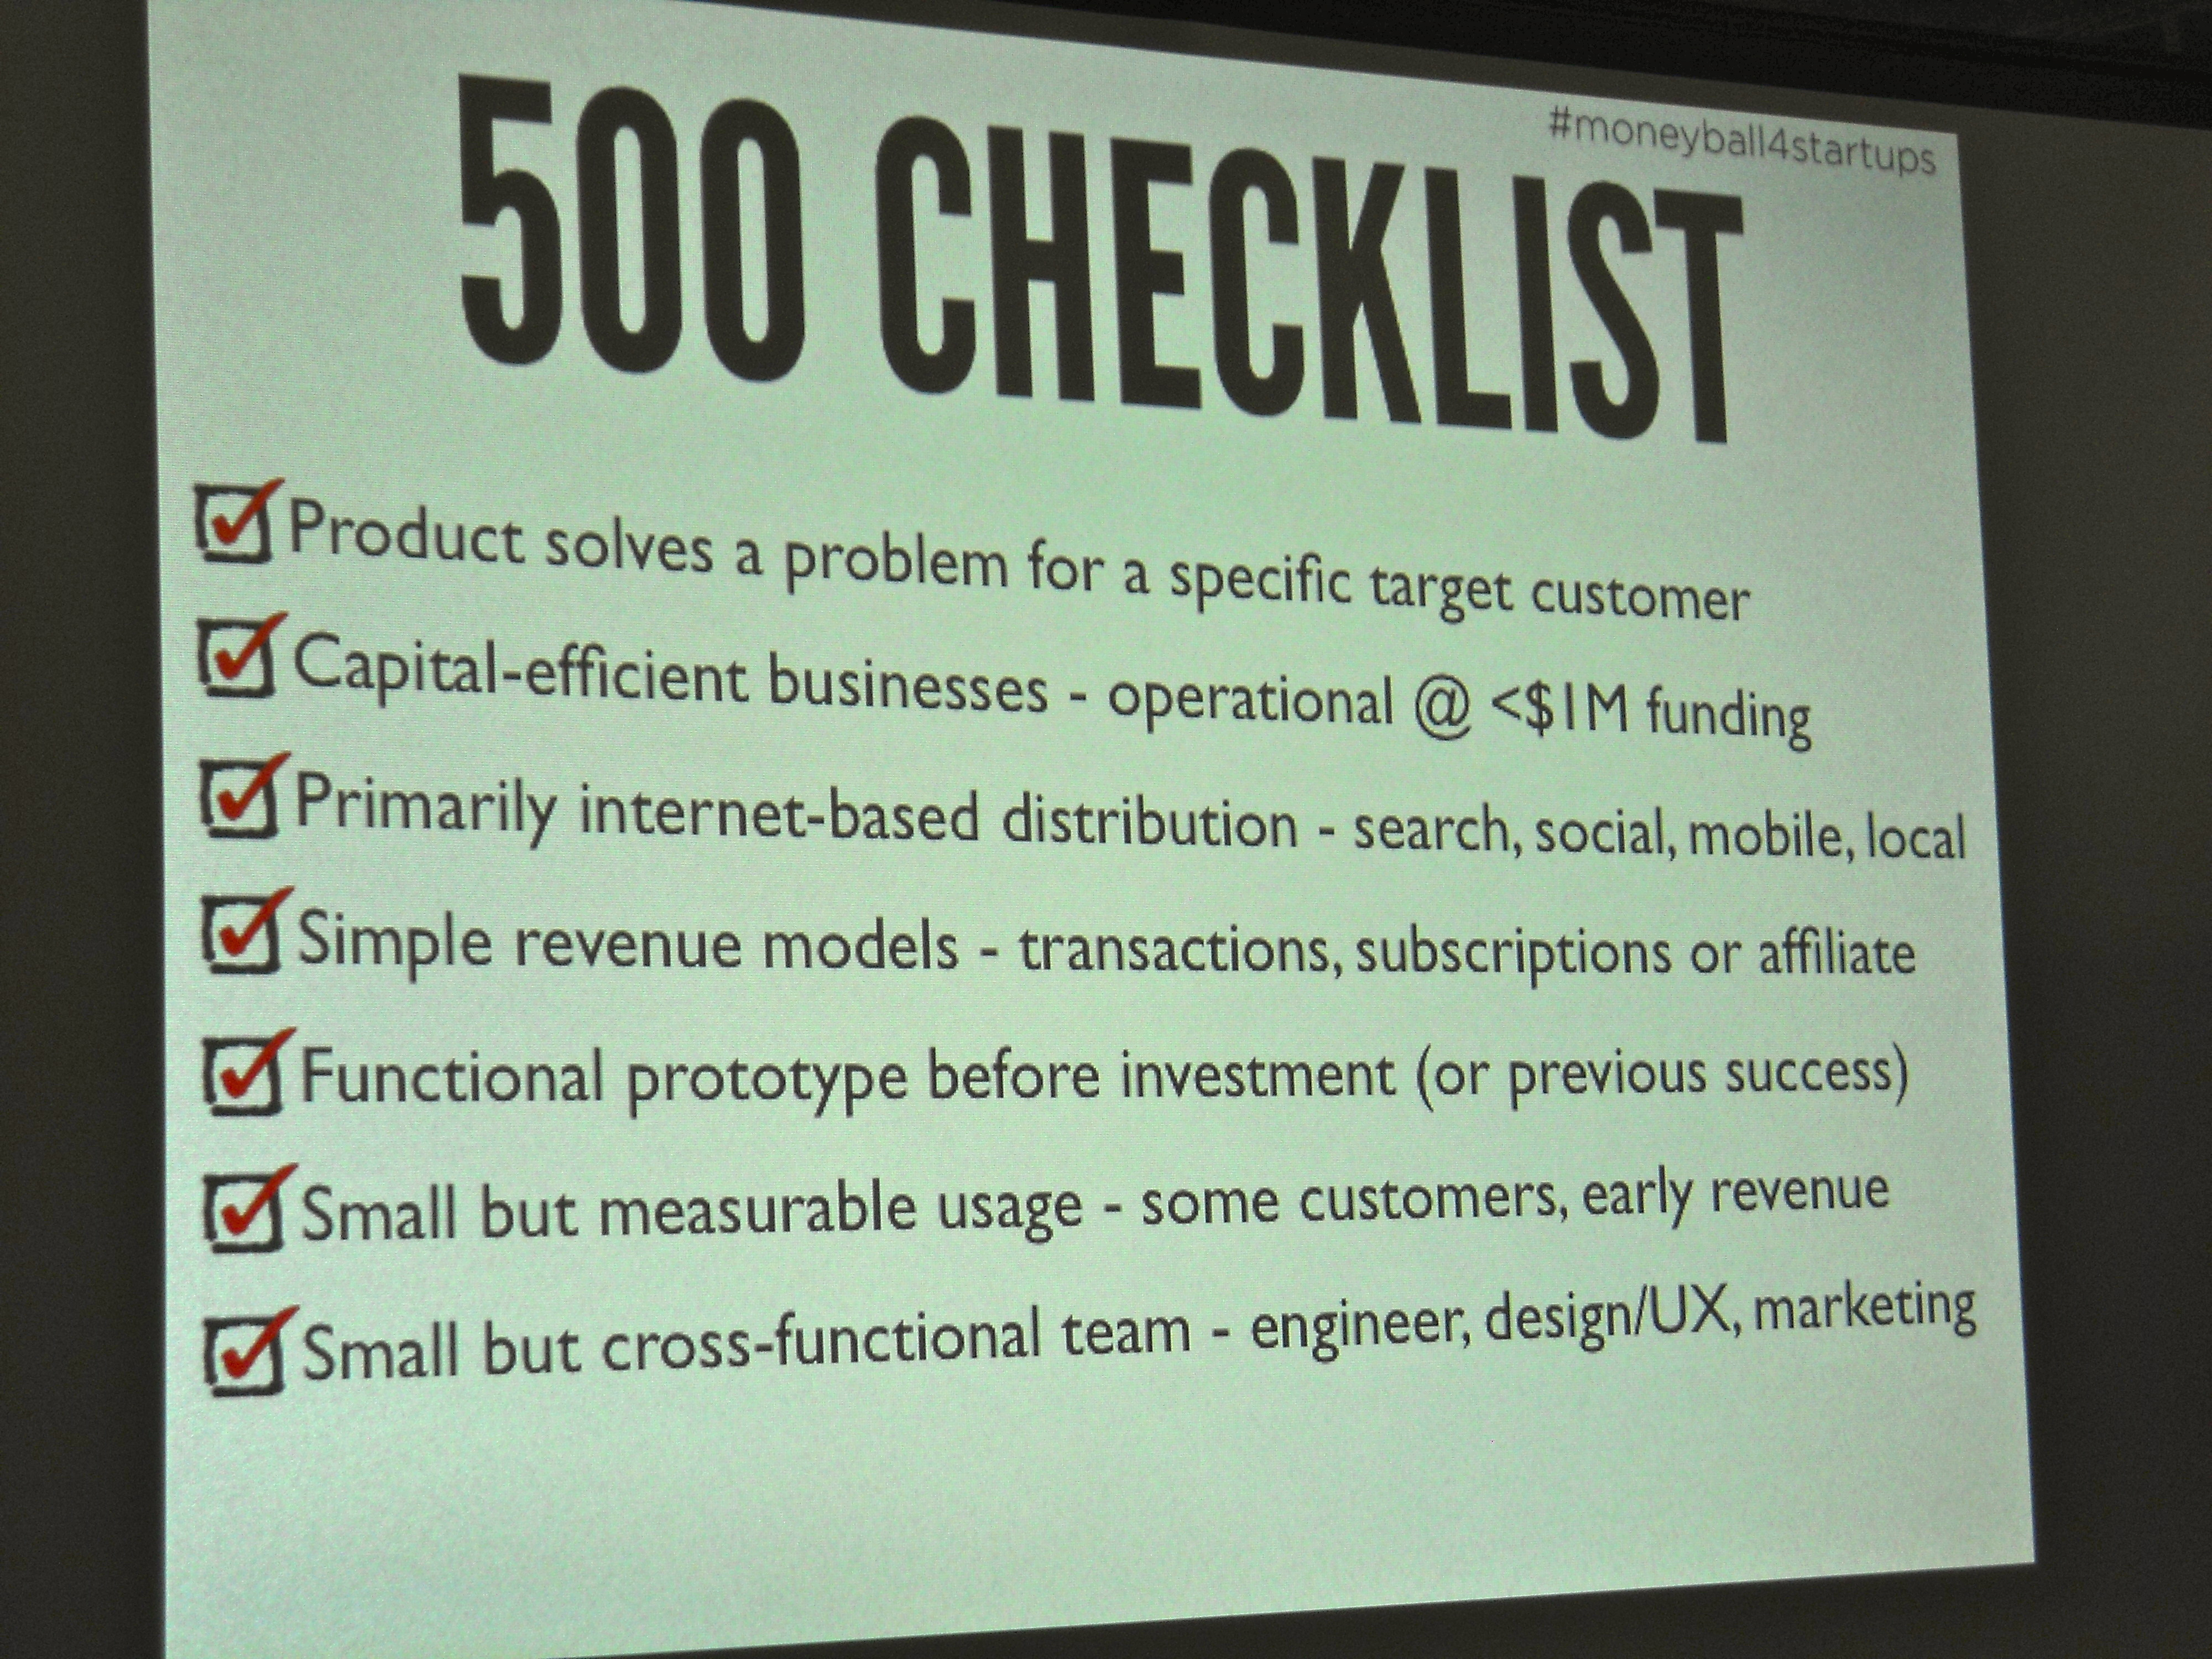 500 startups employs data and analytics to pick tech startups